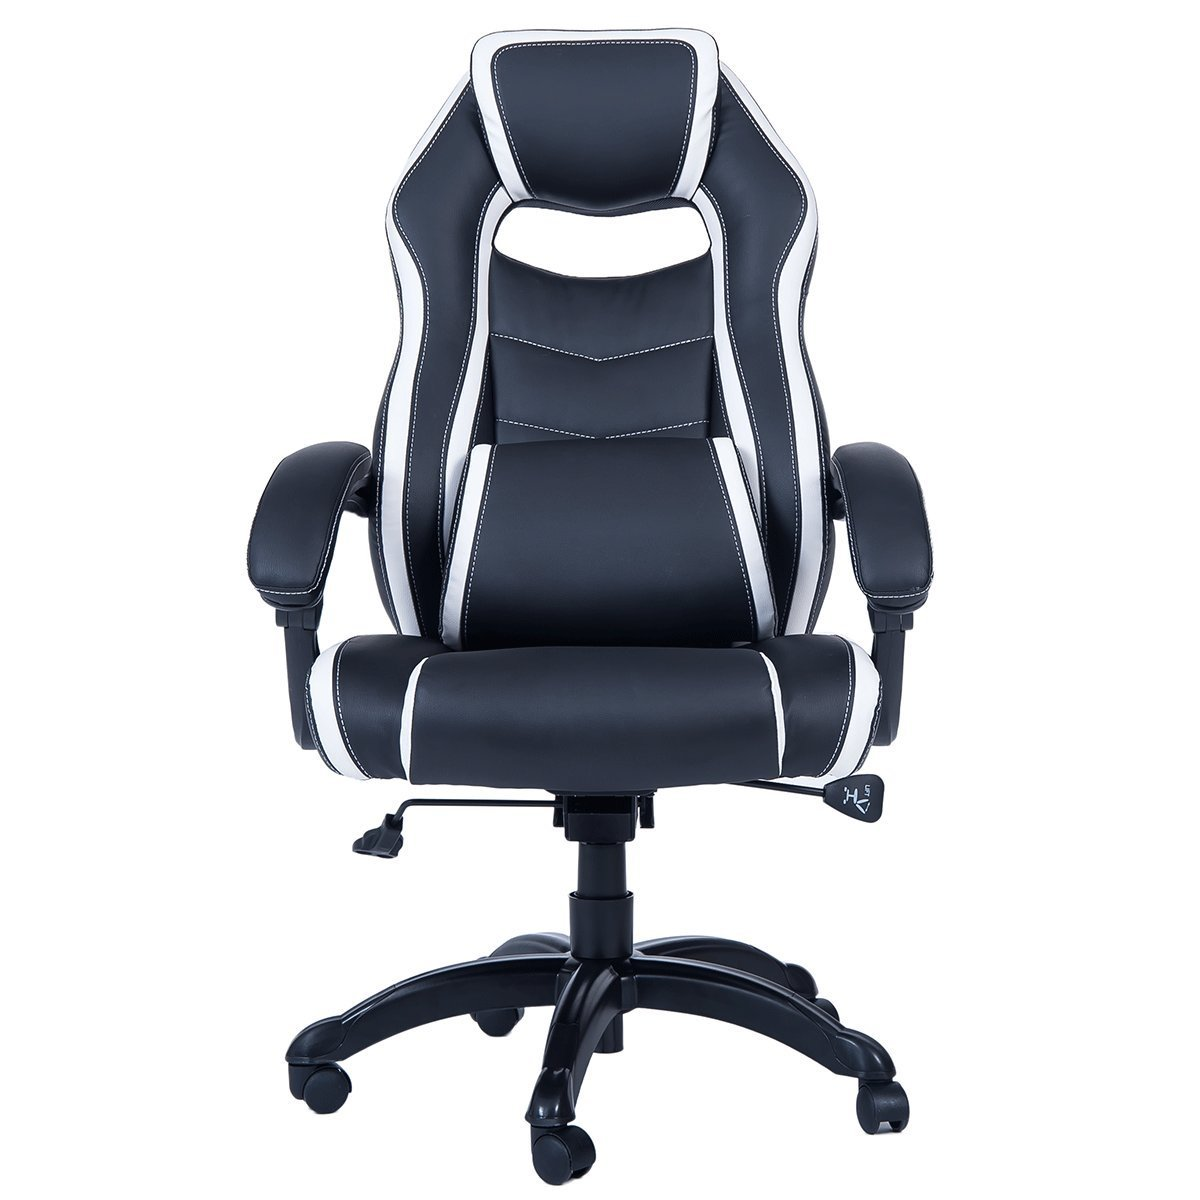 recliner gaming chair rainforest vibrating merax high back spacious racing style walmart com